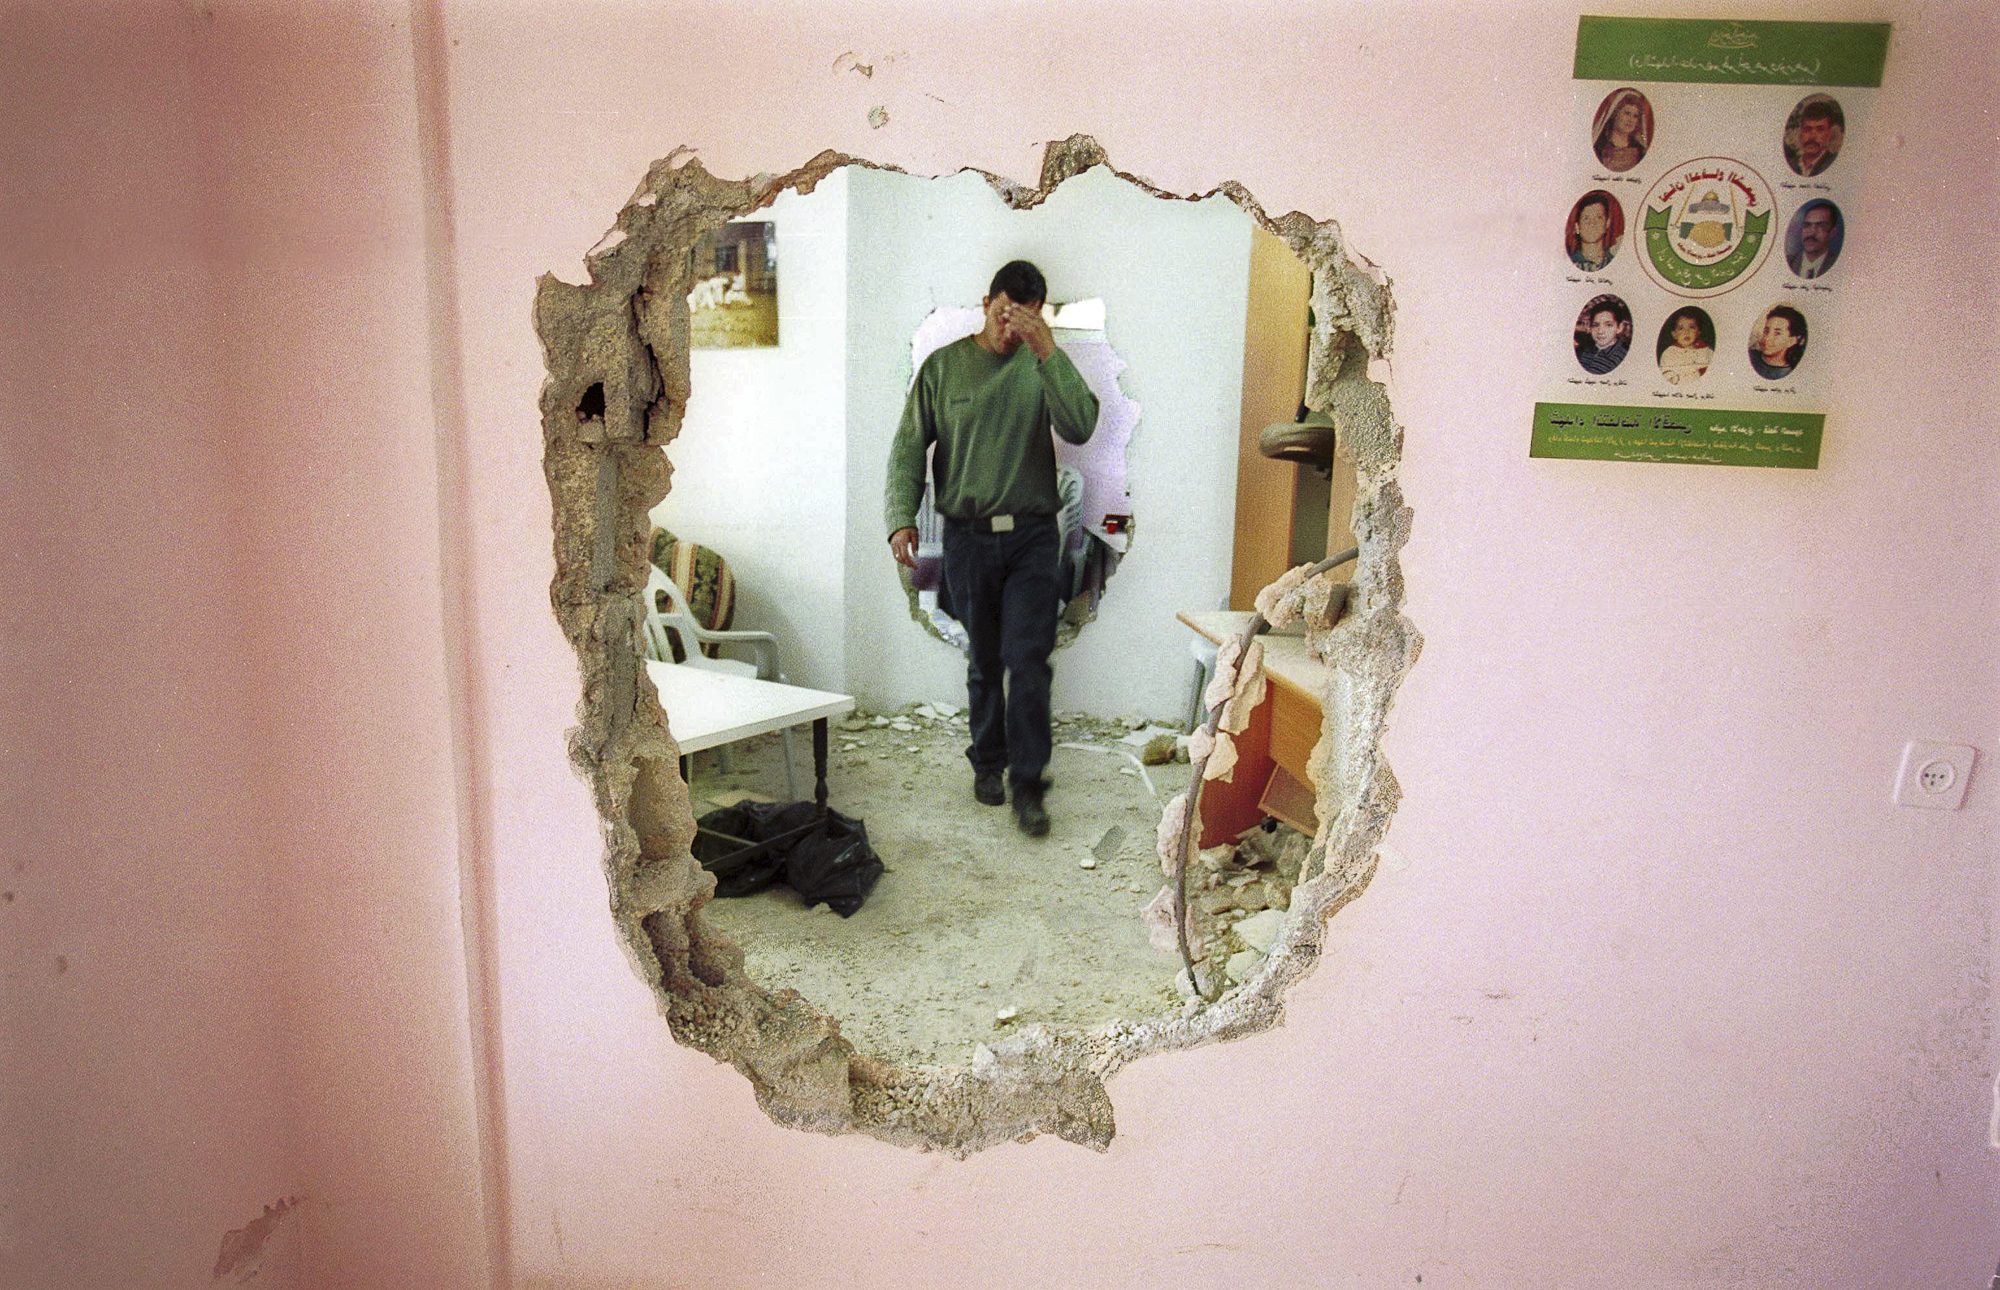 """Operation """"Defensive Shield"""", IDF troops moving through party walls using battering rams inside residential buildings, Ramallah, 2002."""